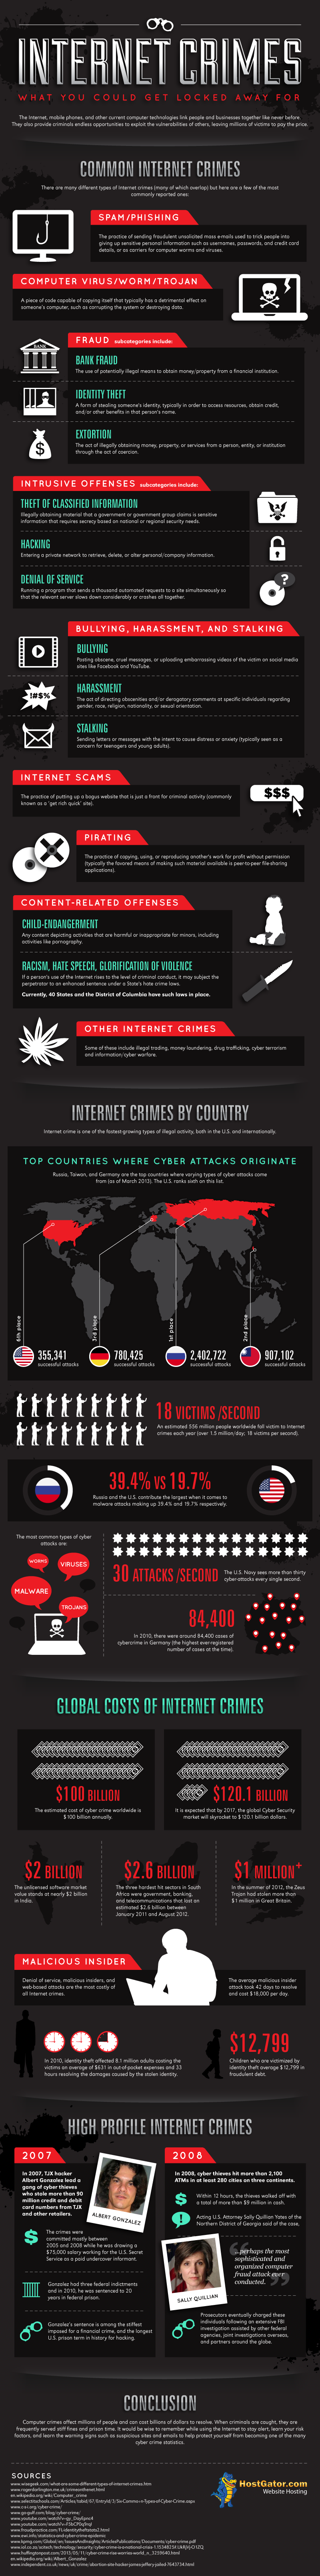 Cyber Crime Around the World-Infographic